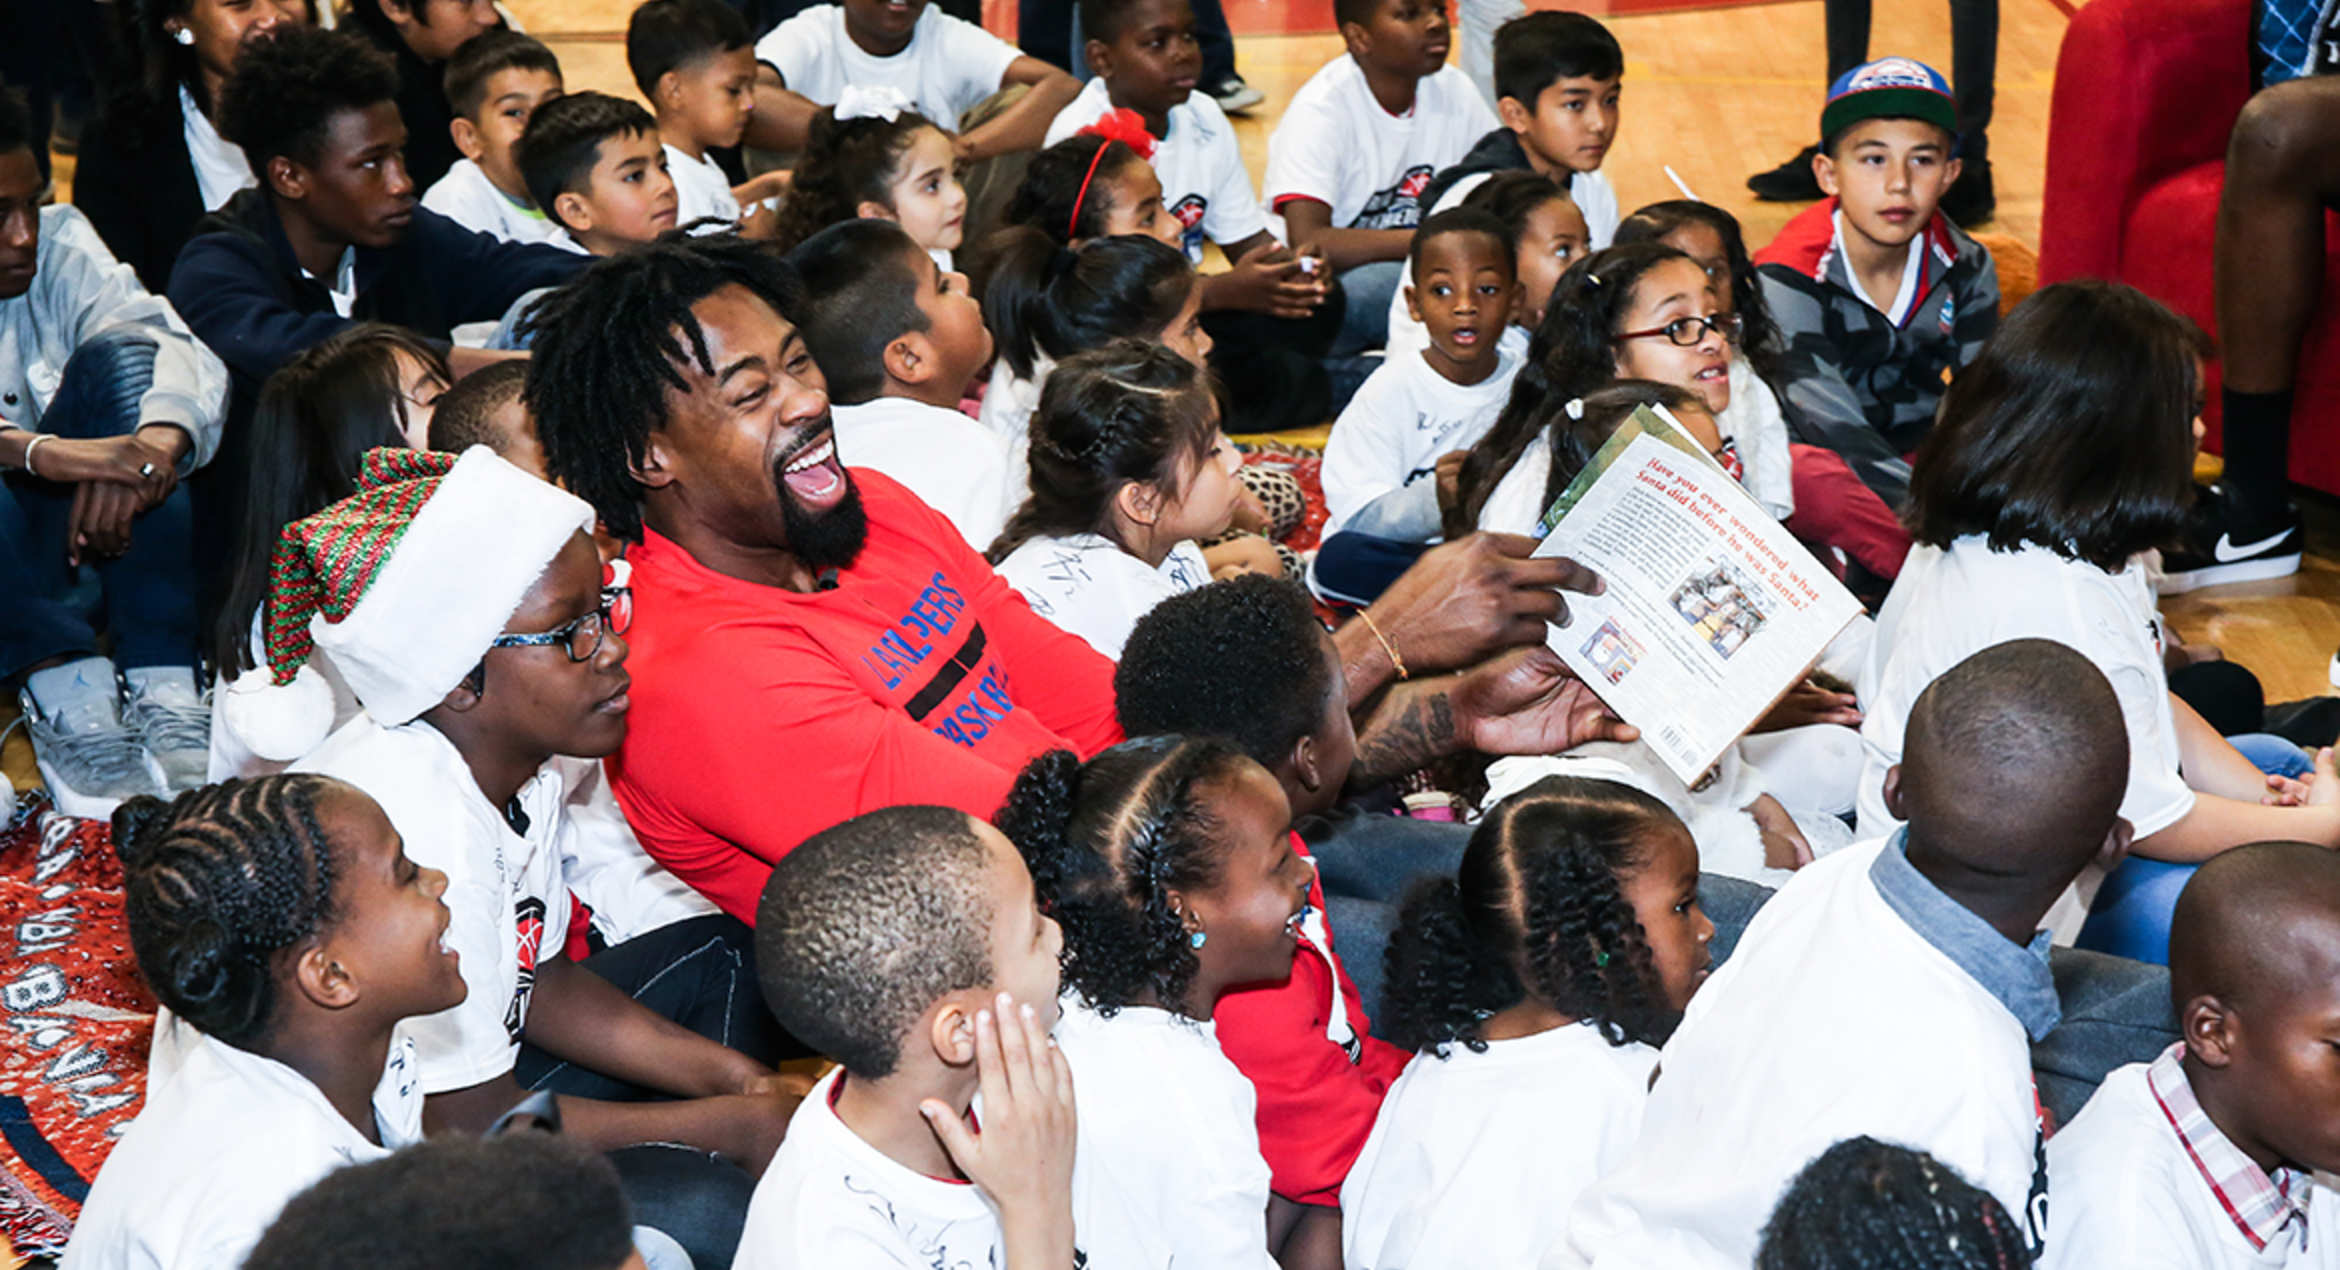 Busy December Hasn't Stopped Clippers From Making Time To Give Back